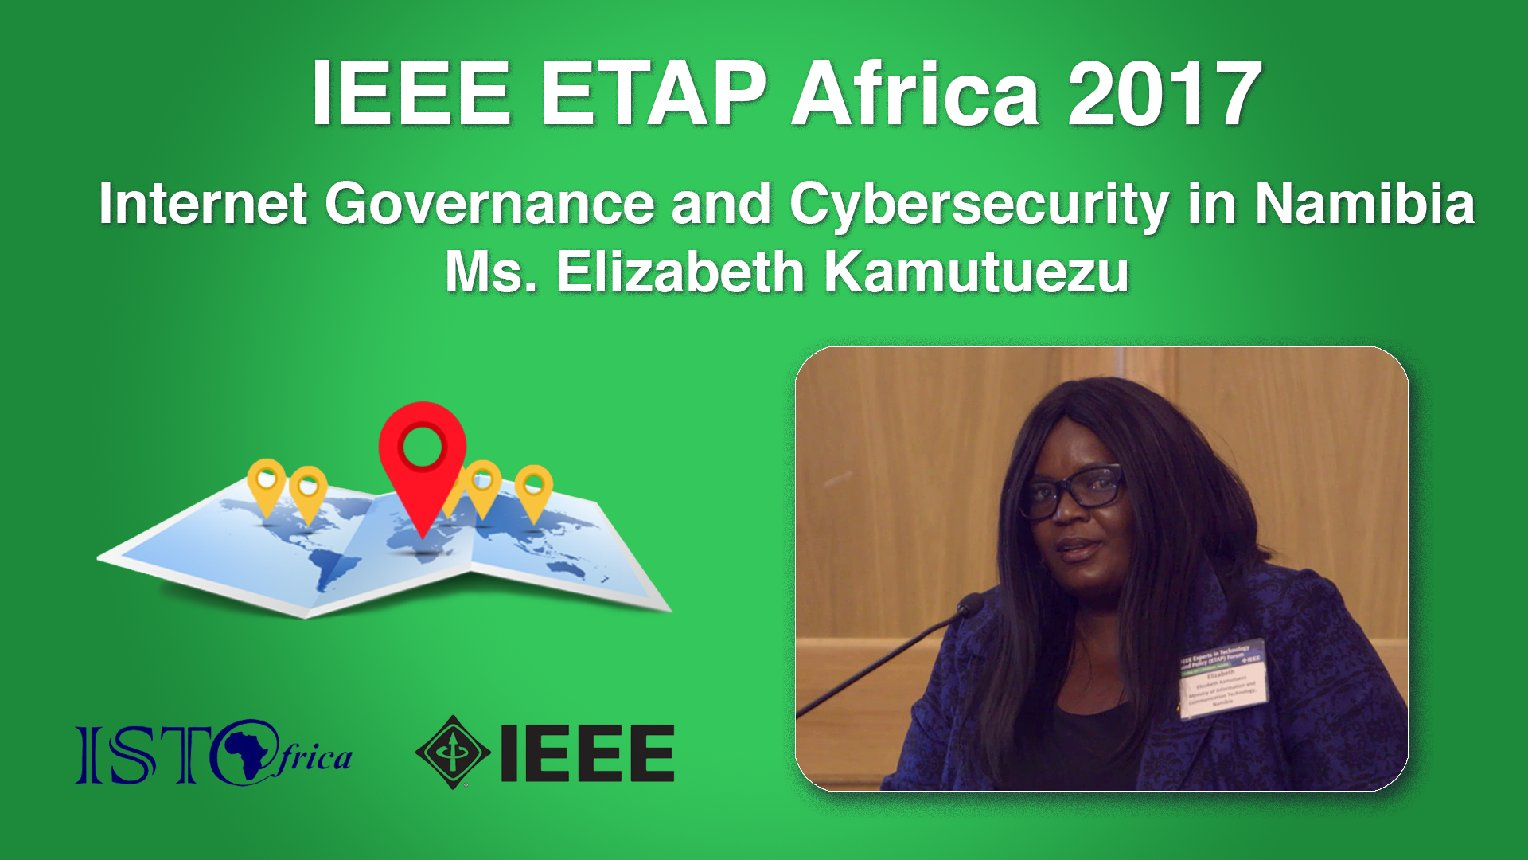 Internet Governance and Cybersecurity in Namibia: Elizabeth Kamutuezu - ETAP Forum Namibia, Africa 2017